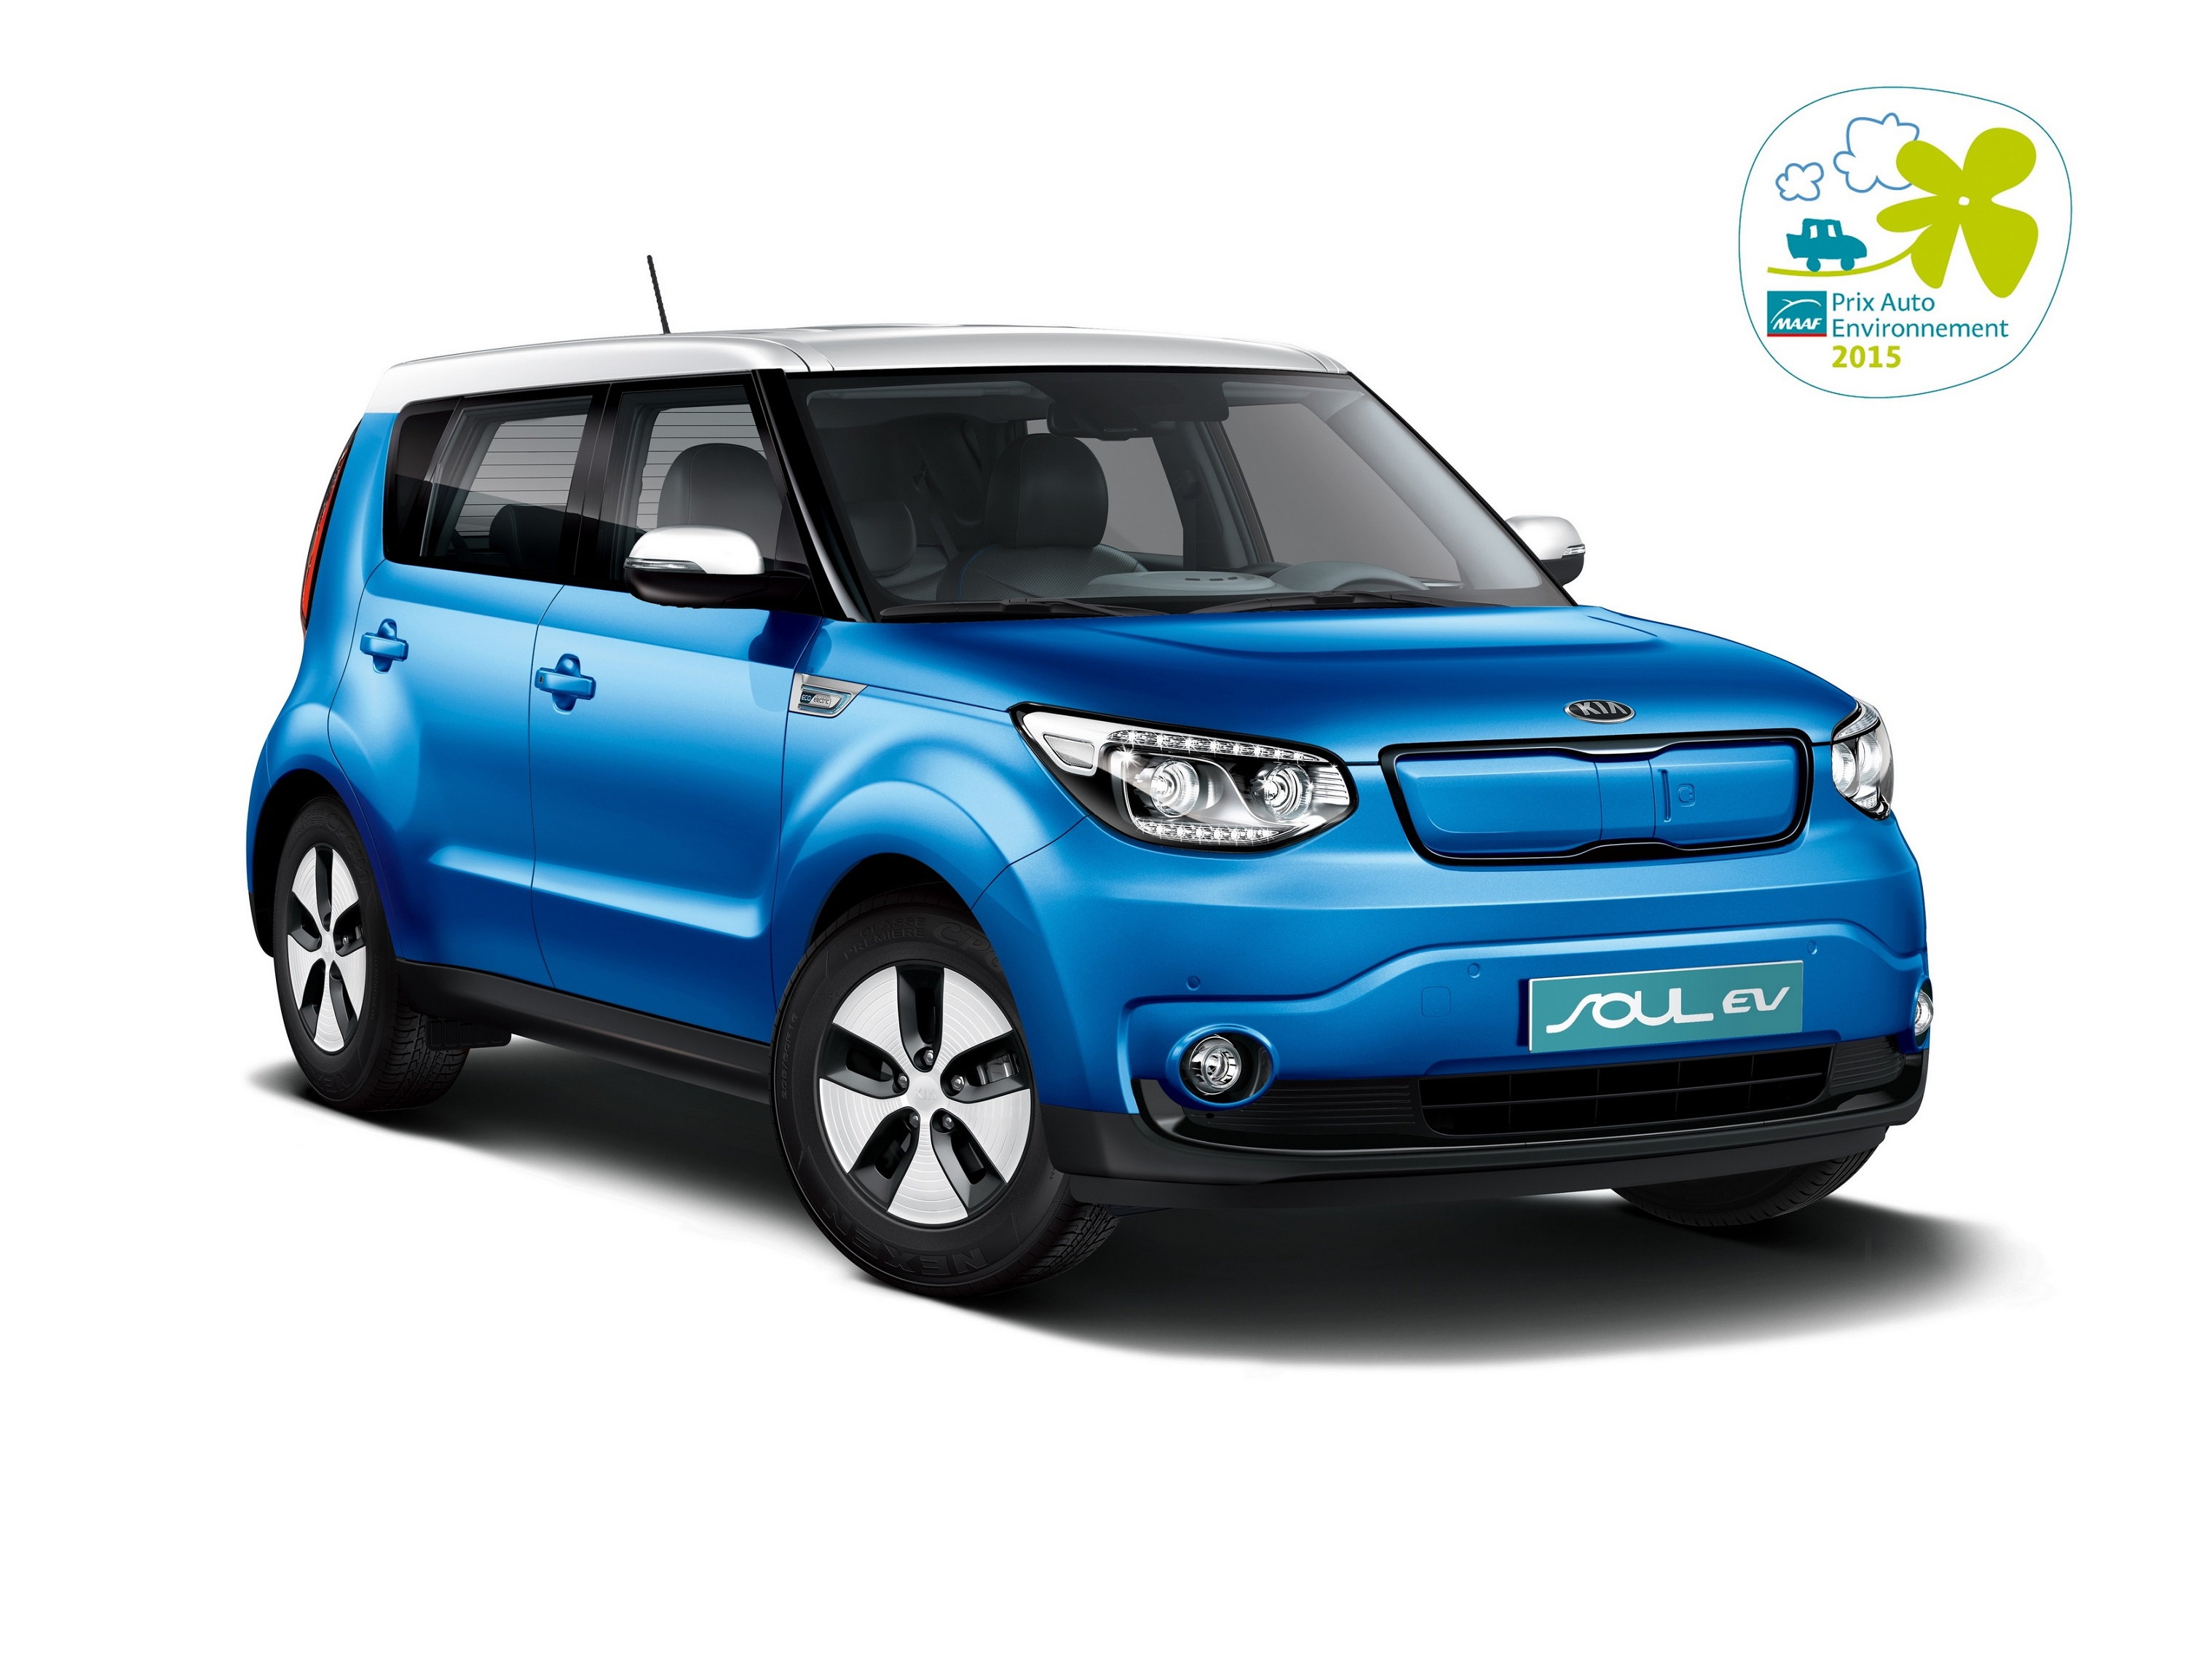 kia soul ev wins prix auto environment maaf 2015 award the news wheel. Black Bedroom Furniture Sets. Home Design Ideas